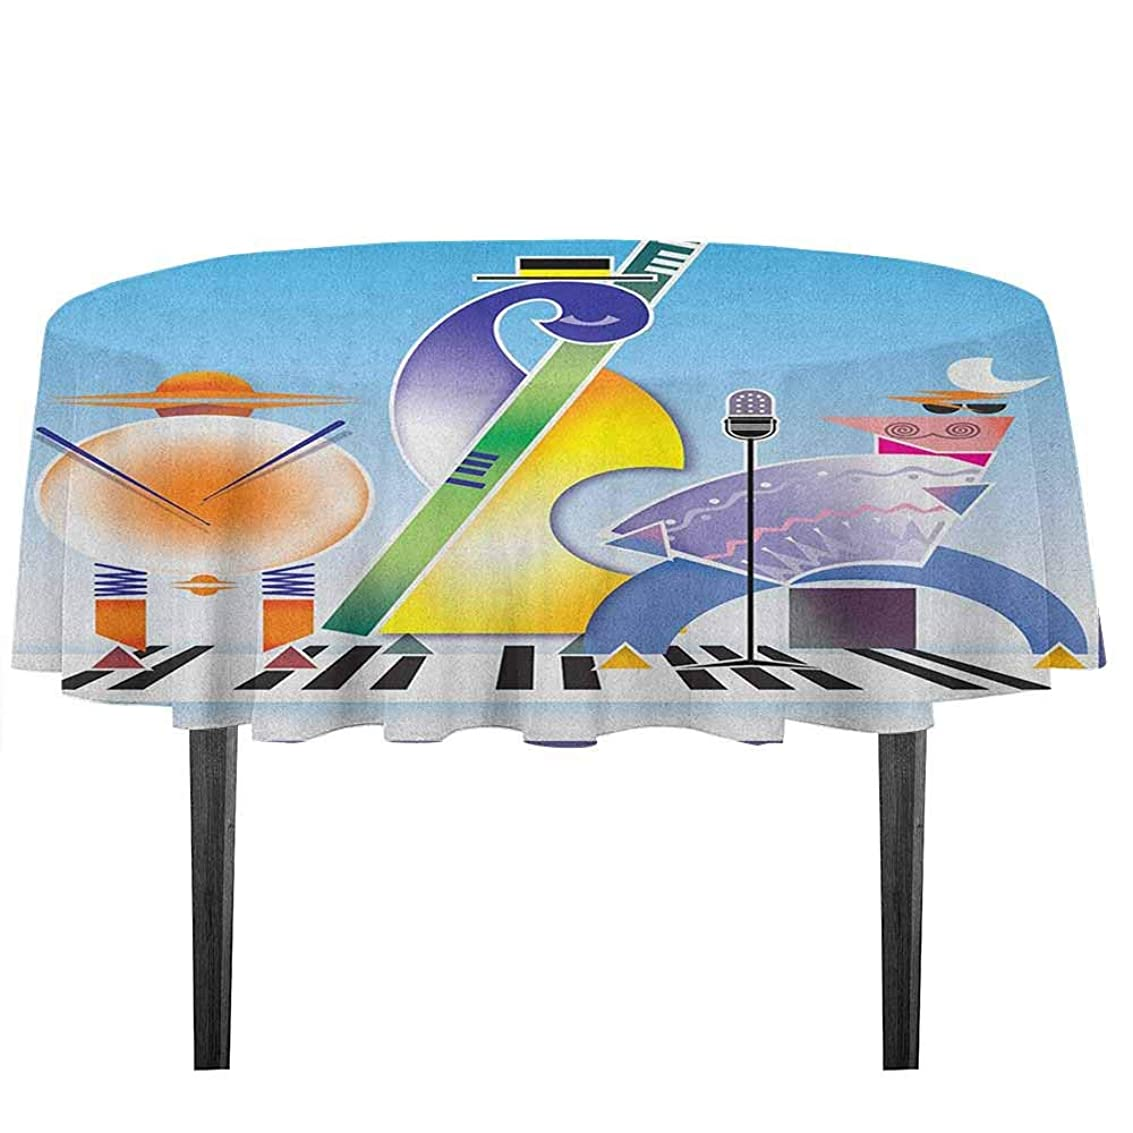 kangkaishi Music Washable Tablecloth Abstract Band of Geometric Shapes Drums Accordion Performing on Keyboard Surface Desktop Protection pad D55.11 Inch Multicolor sjujt5814036847